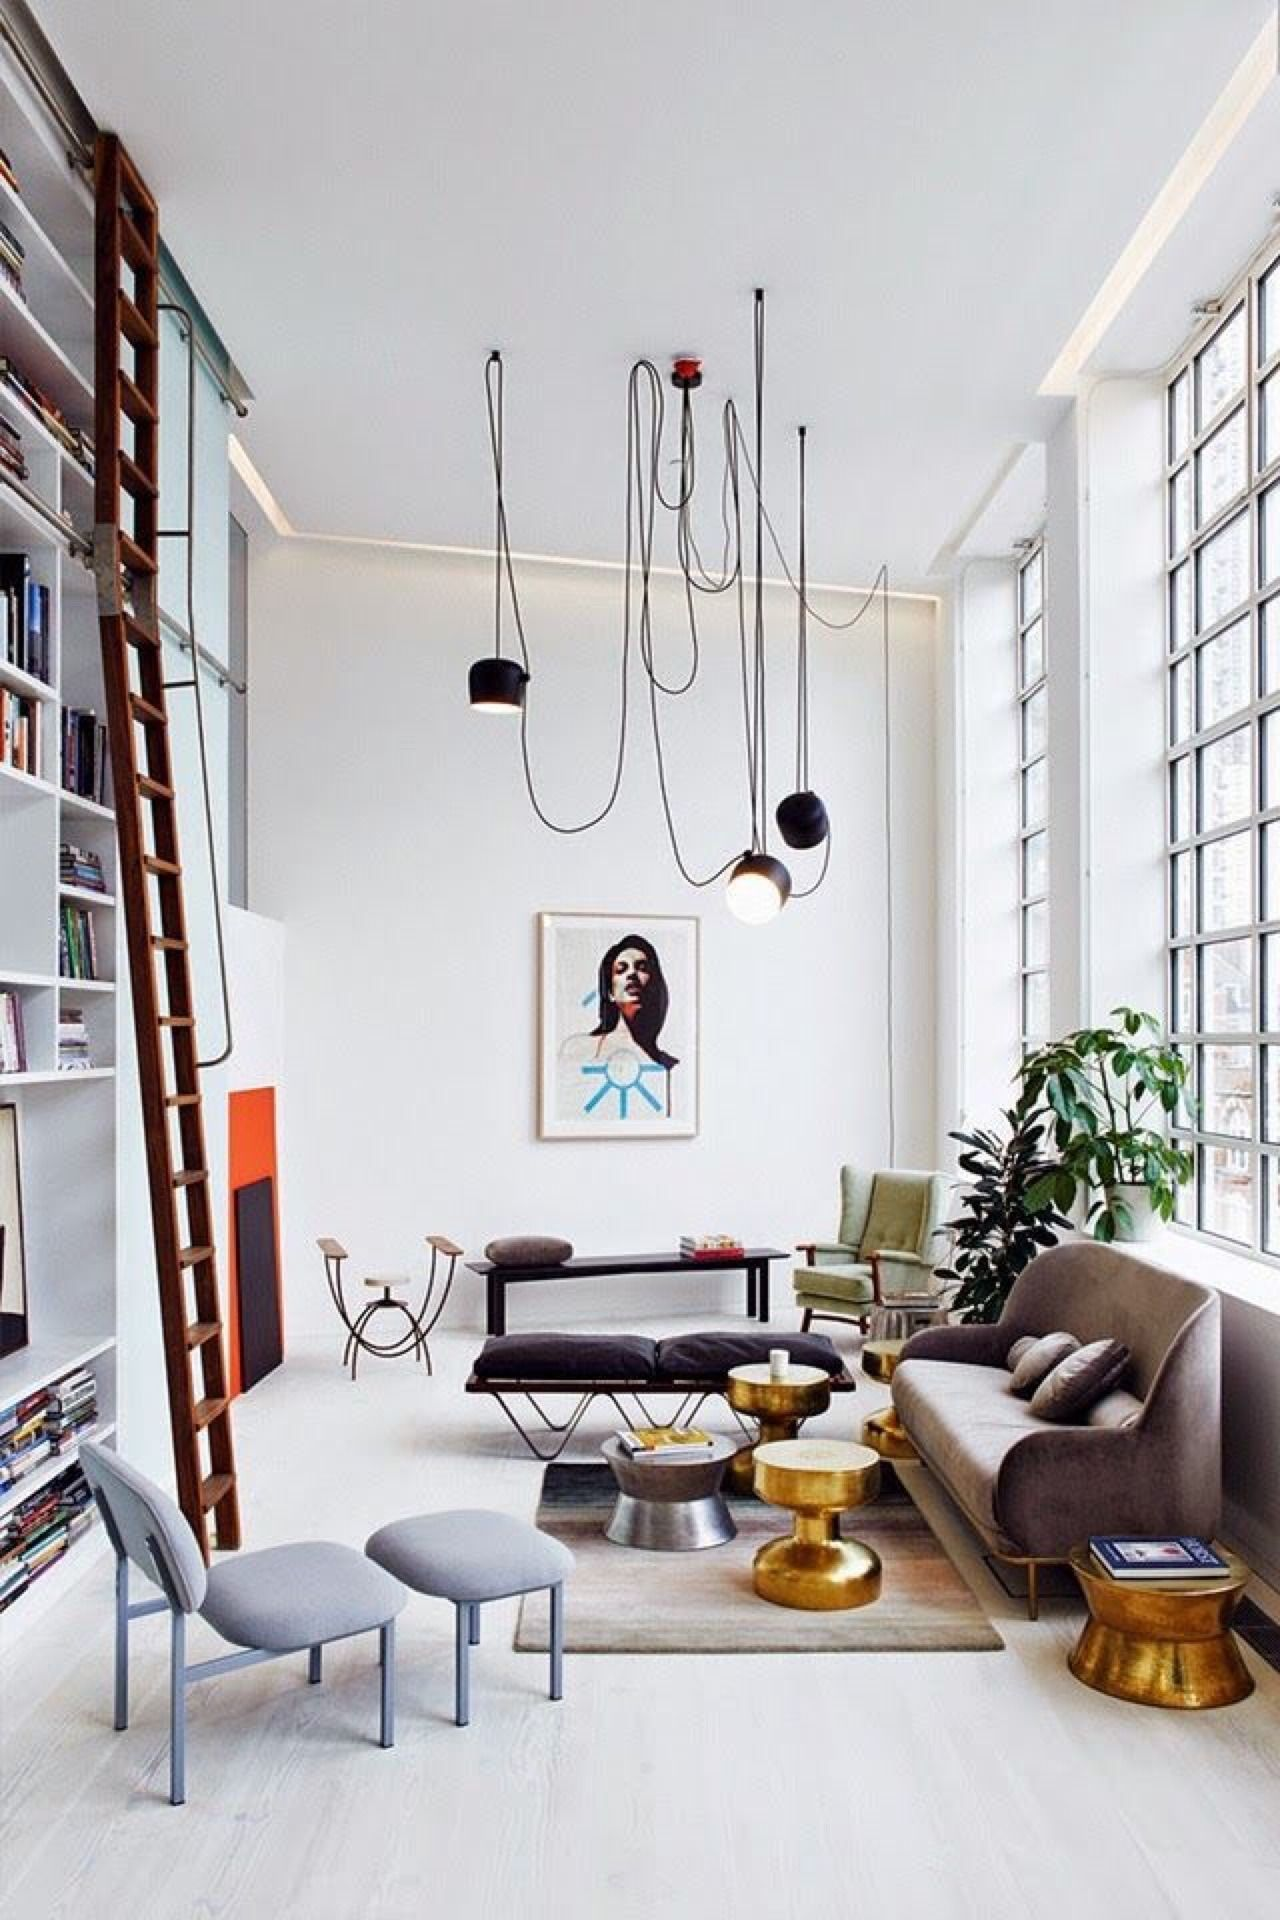 Warm And Inviting Yet Modern And Sleek Incorporating Scandinavian Influences Into Your Home Decor Is Surprising Interior Interior Design Interior Architecture